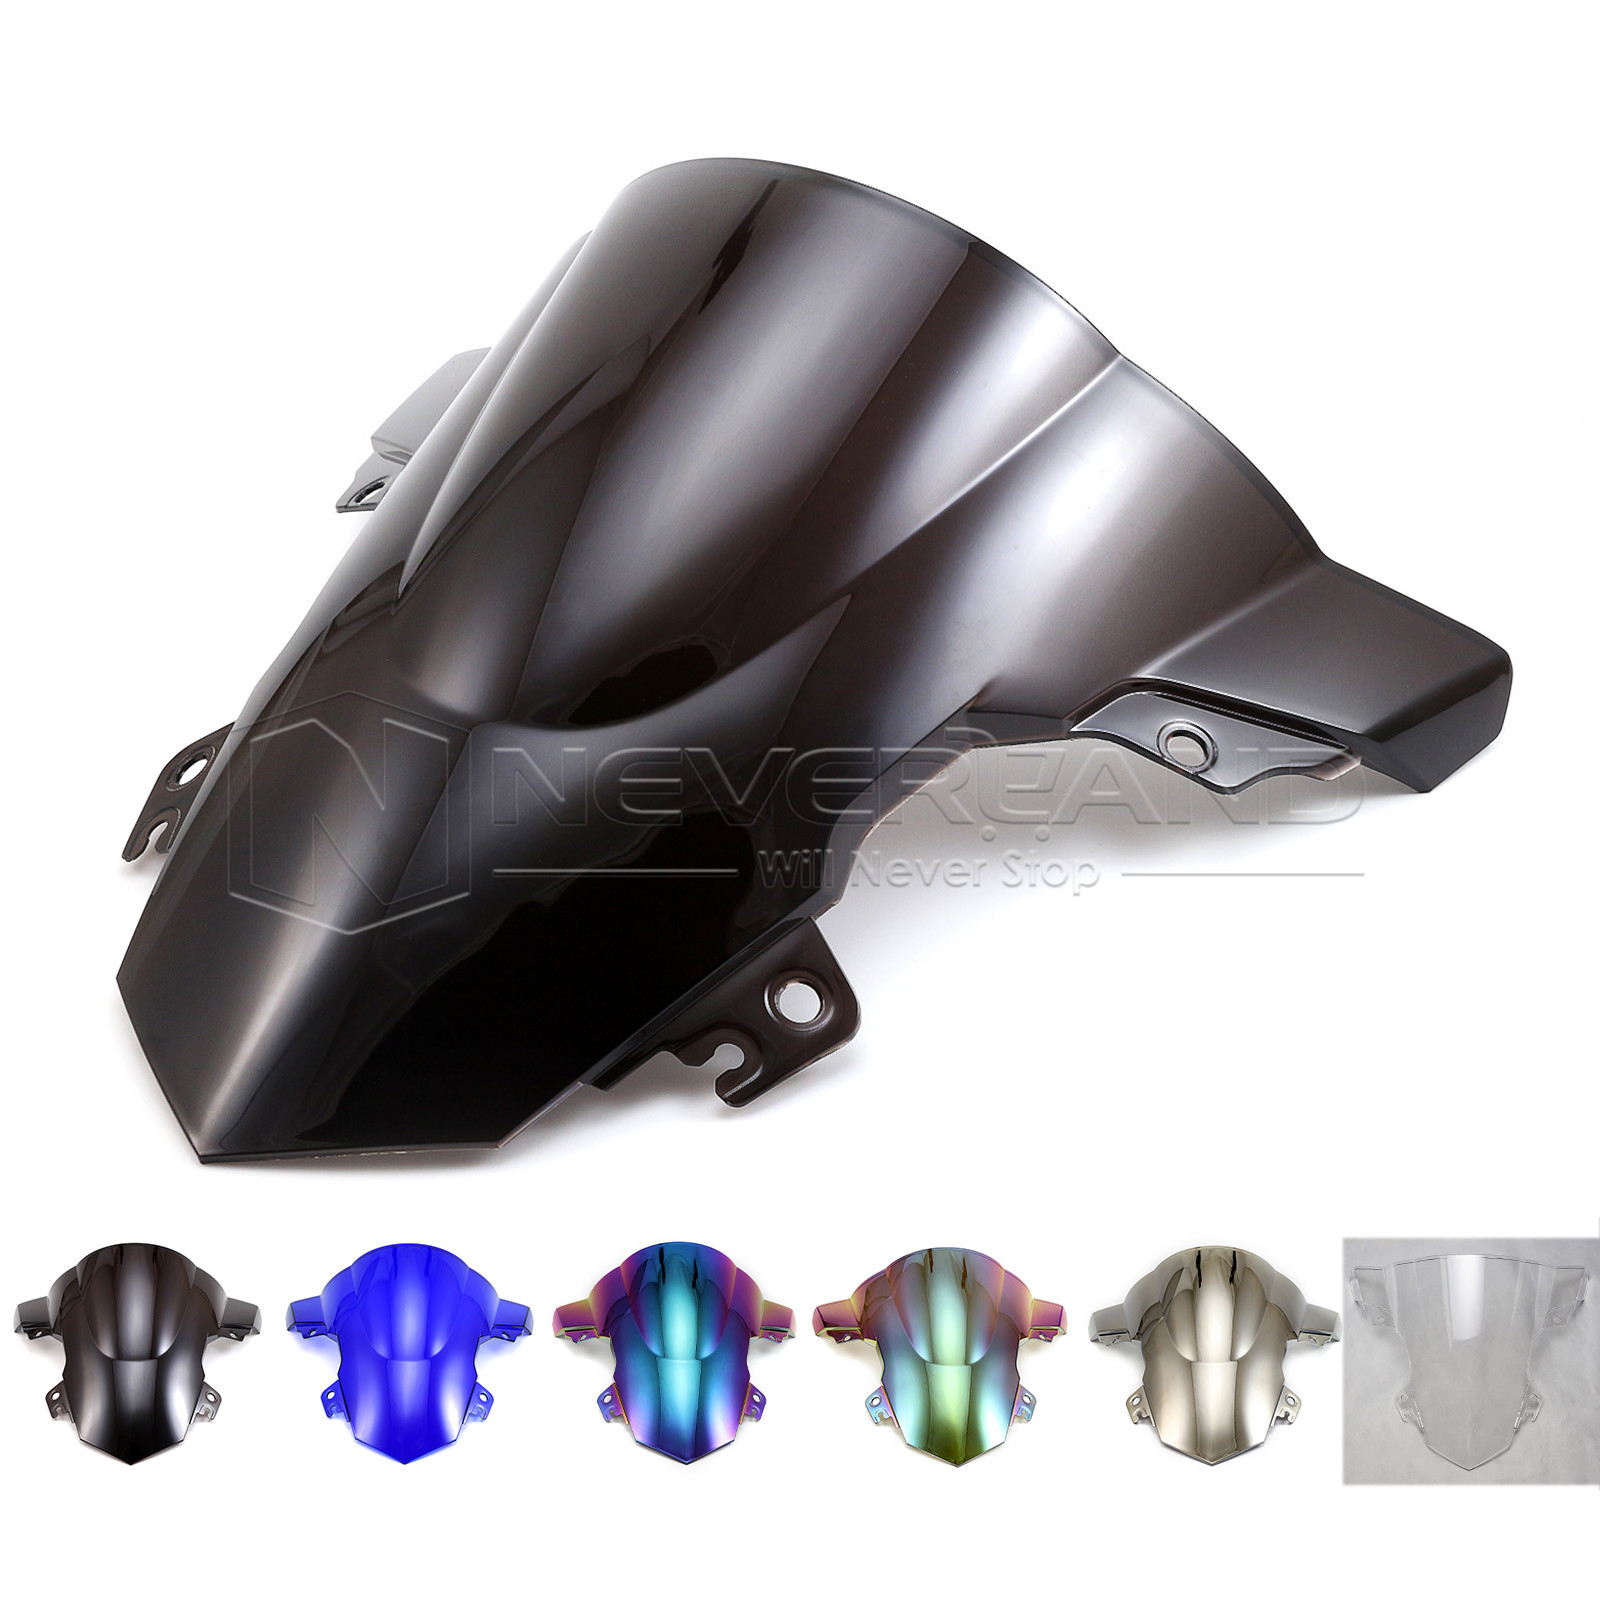 High quality ABS Motorcycle Windscreen Windshield Double Bubble for BMW S1000RR S1000 RR 2015 2016 15 16 D35(China (Mainland))